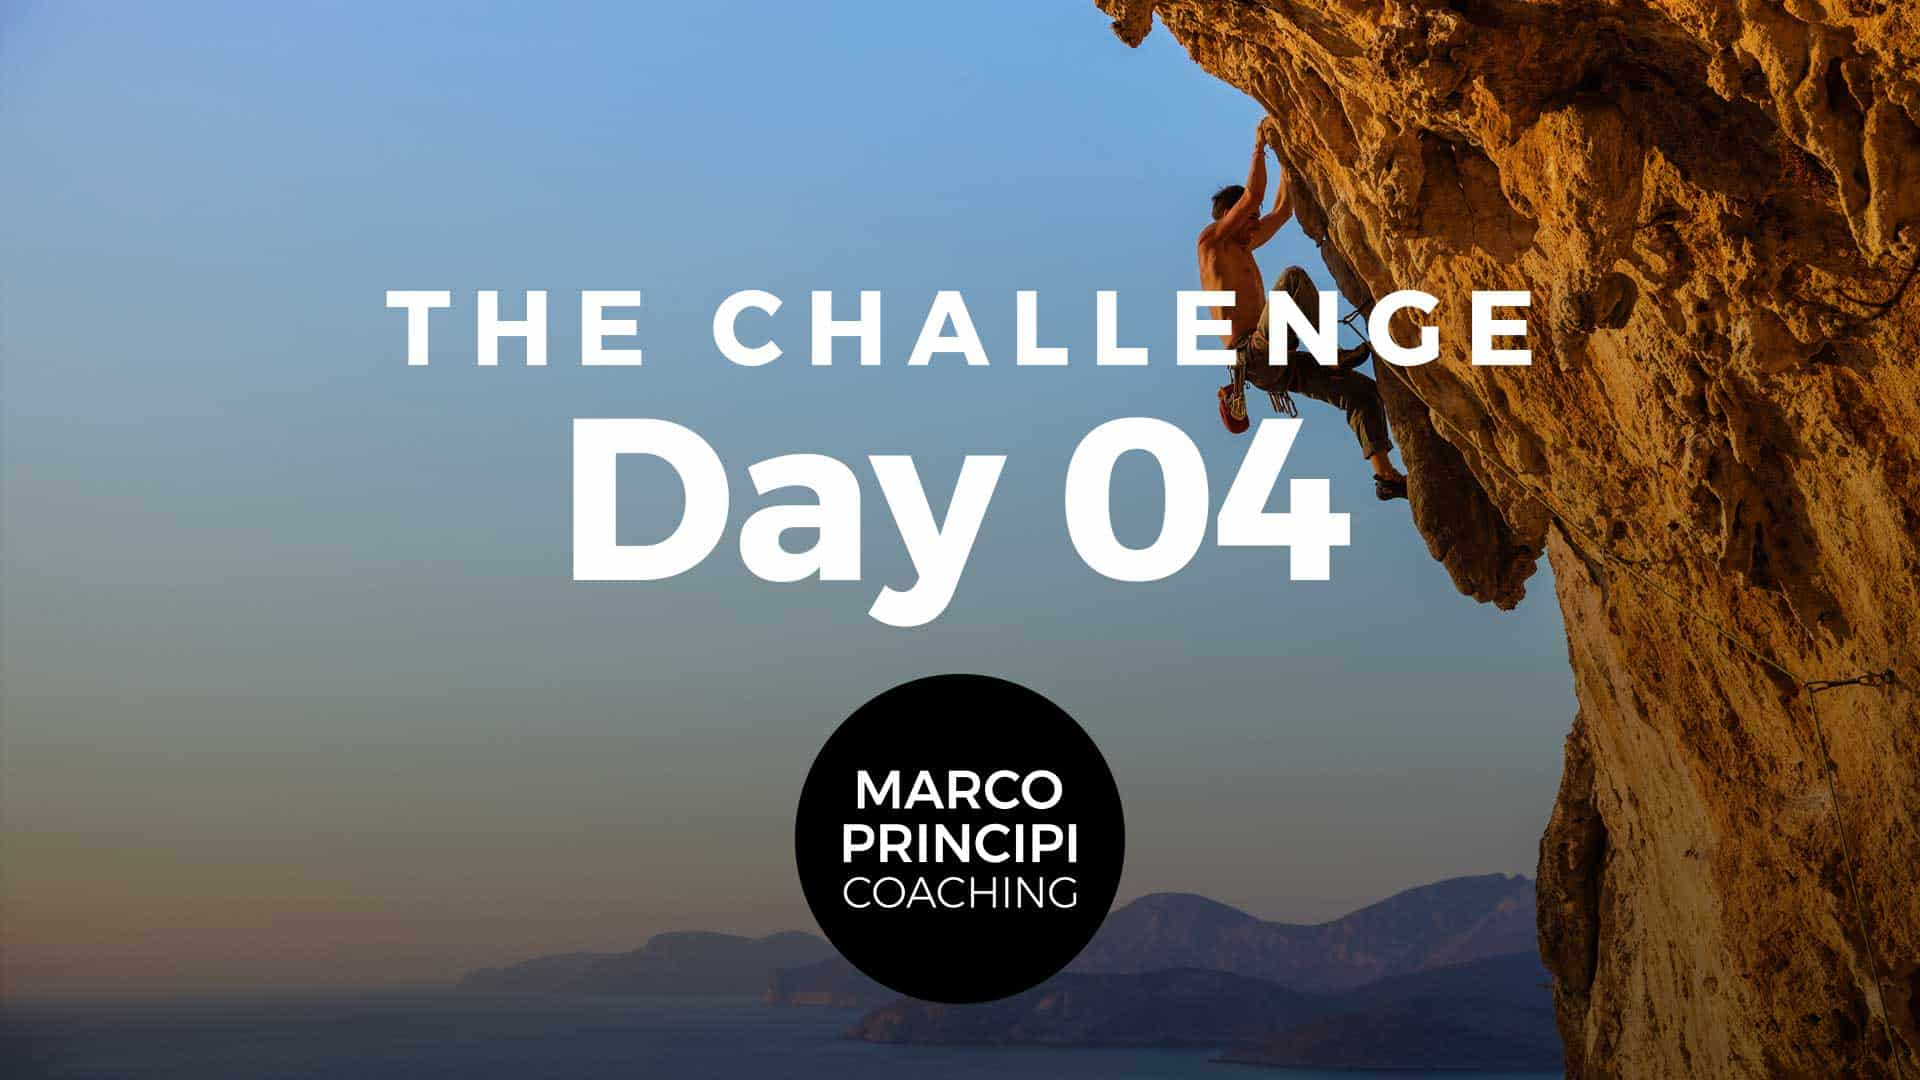 Marco Principi YT Cover The Challenge Day 004